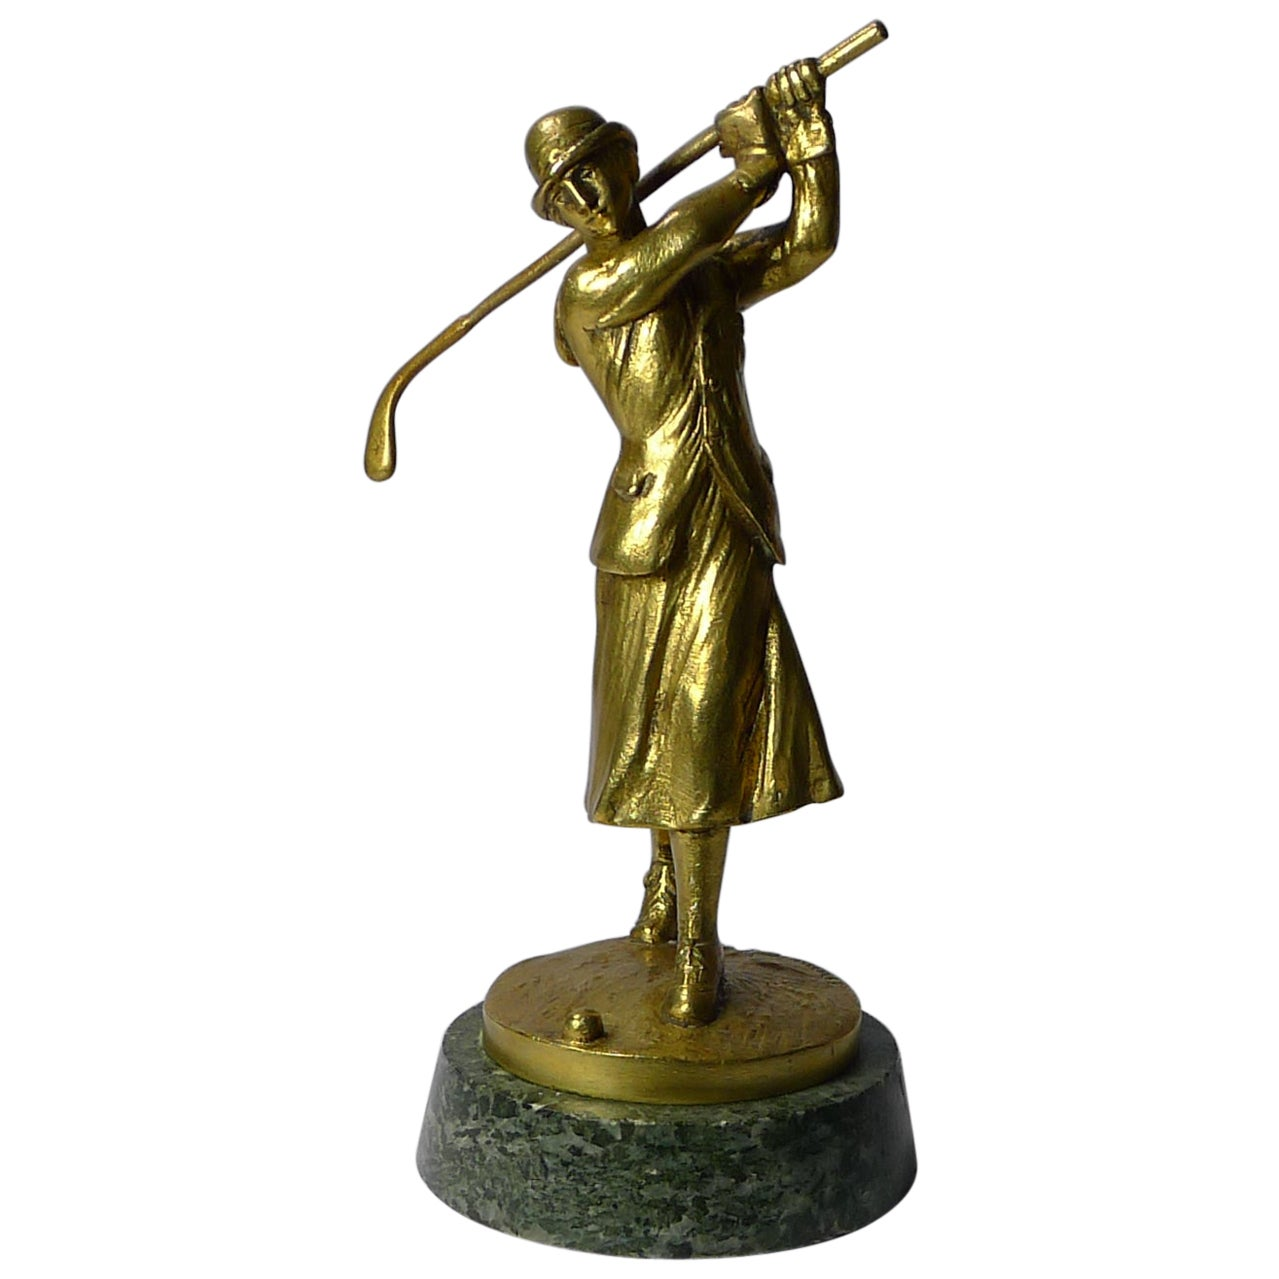 Art Deco Bronze Car Mascot in the from of a Lady Golfer, Jose Dunach